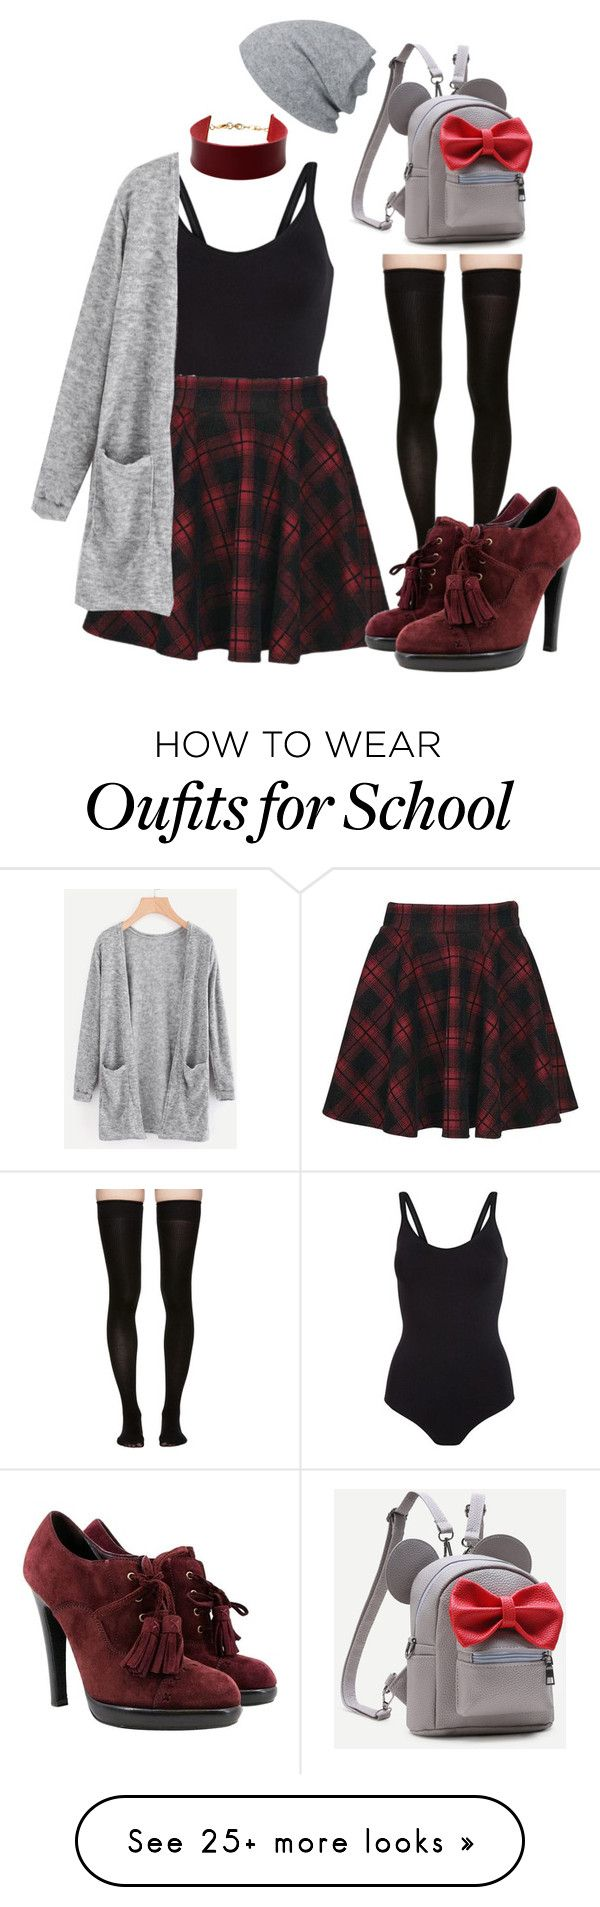 """""""School"""" by clevver on Polyvore featuring Marieyat, Amrita Singh and Yves Saint Laurent"""